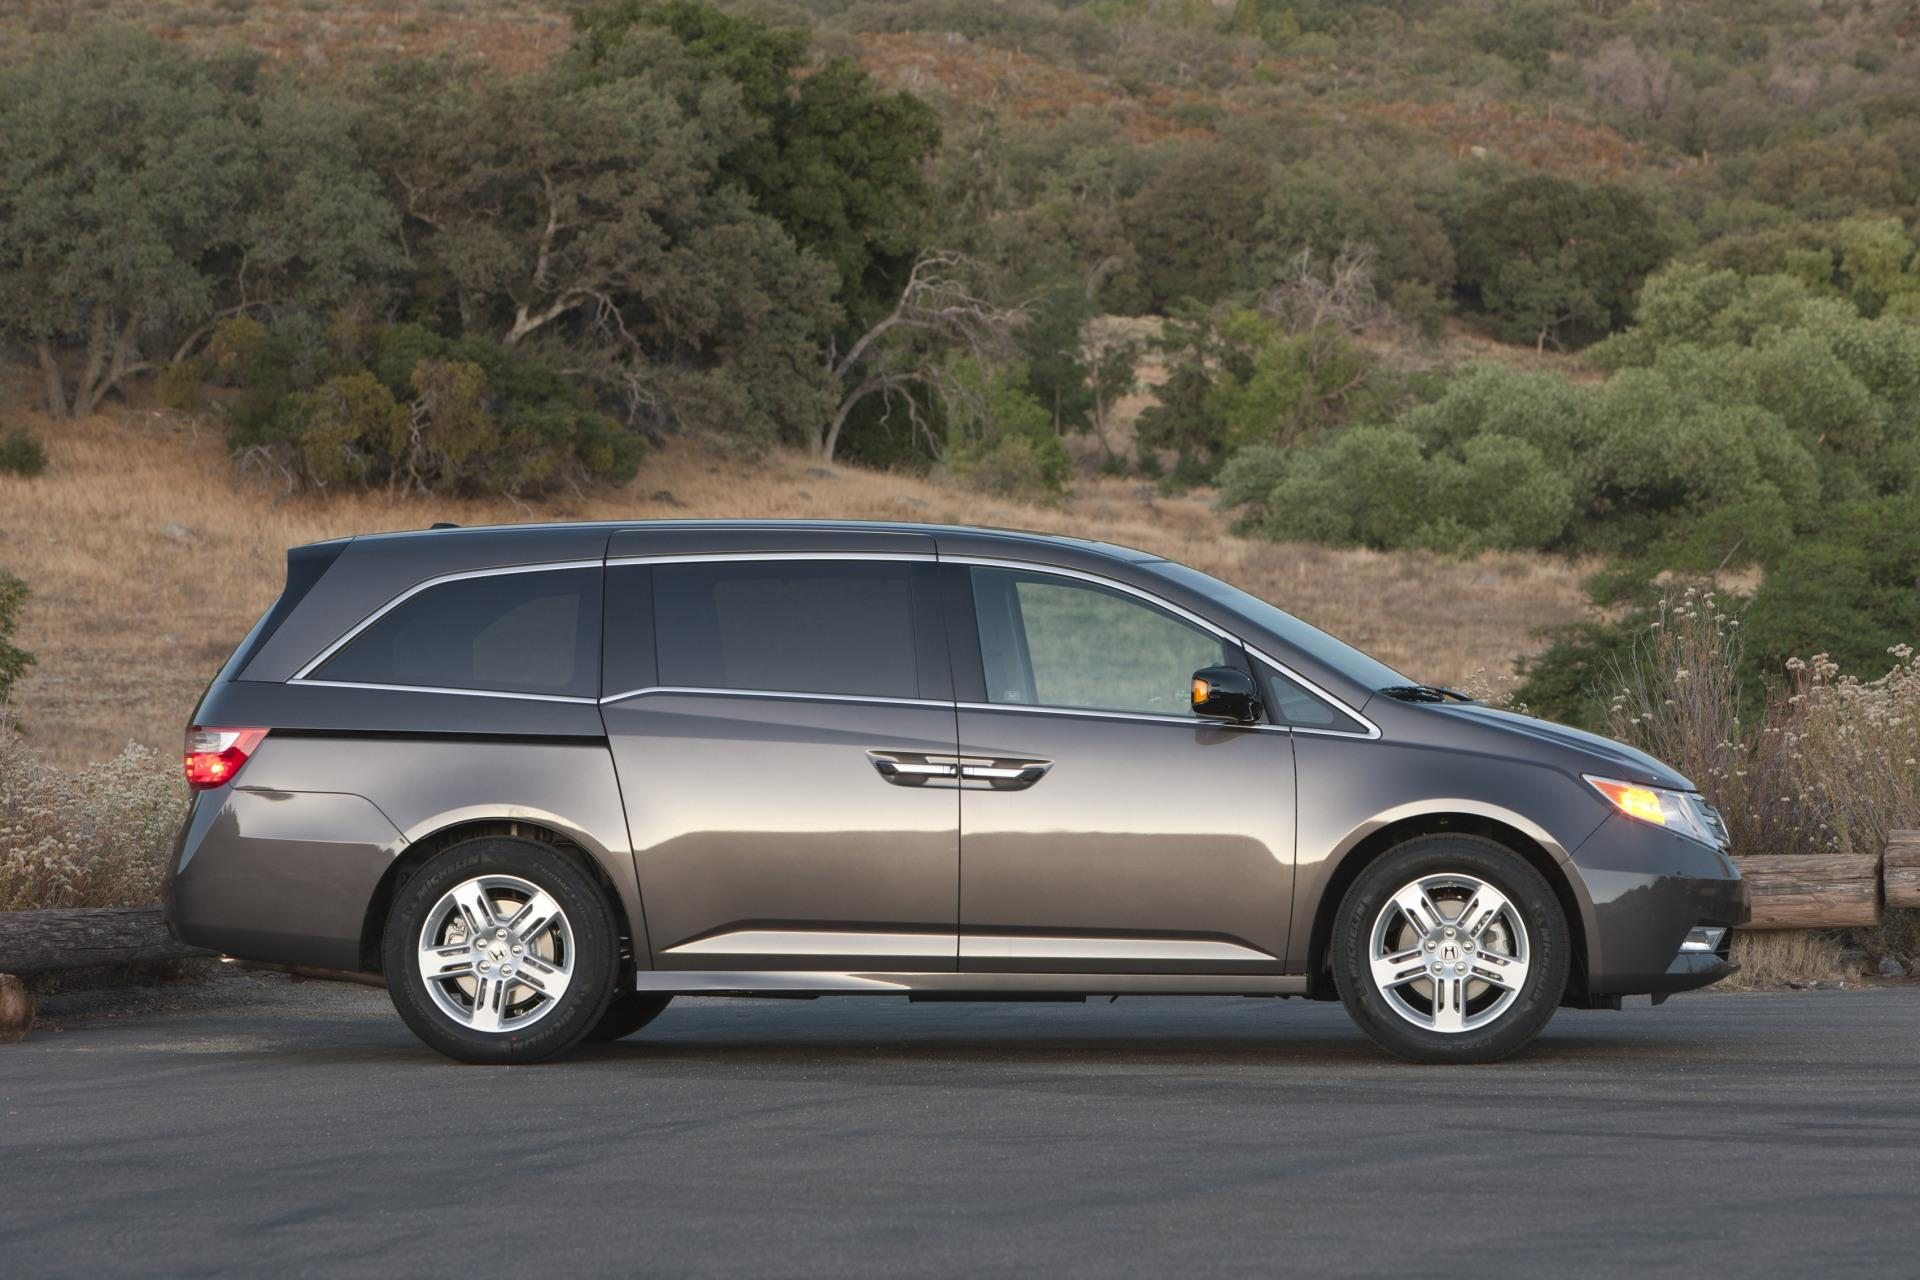 2011 Honda Odyssey News and Information | conceptcarz.com